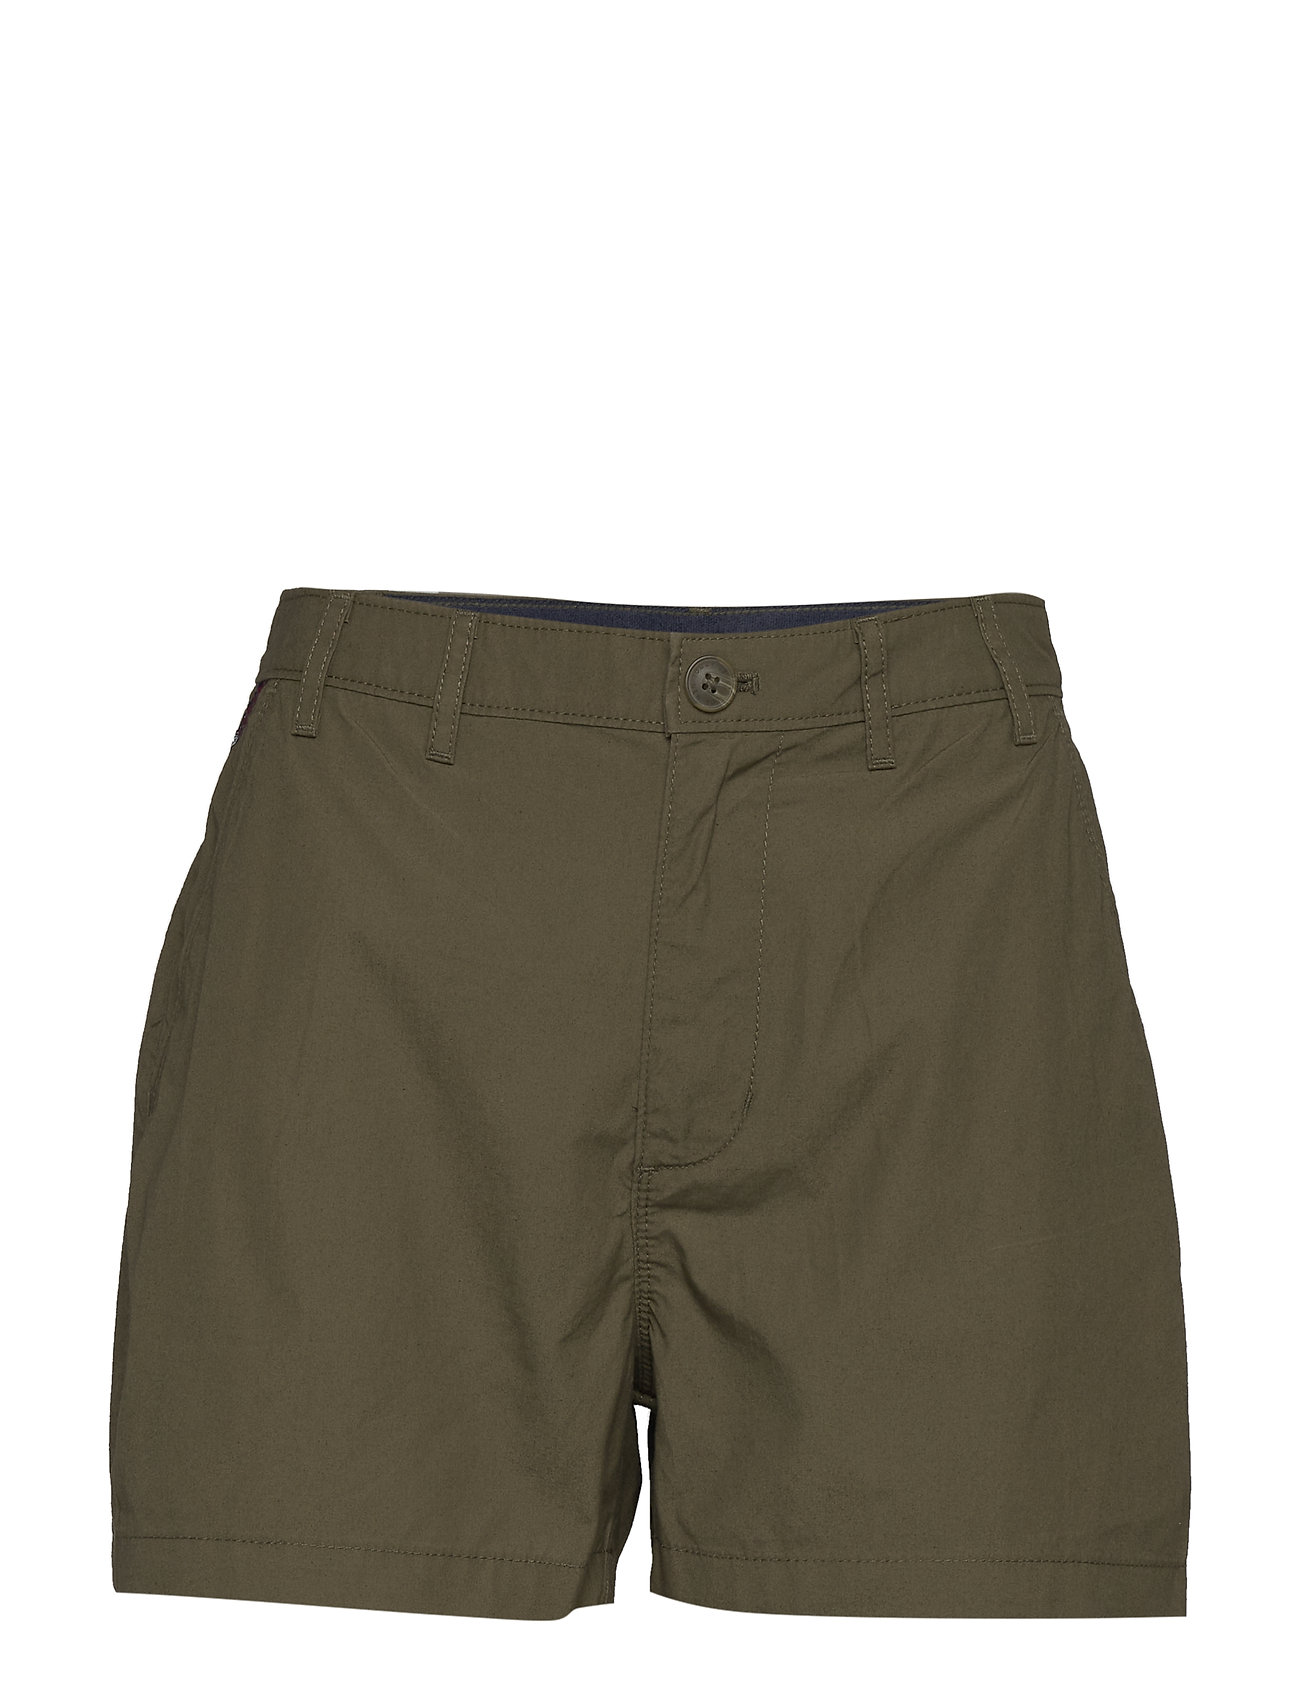 Image of Tjw Essential Chino Short Shorts Chino Shorts Grøn Tommy Jeans (3406276771)